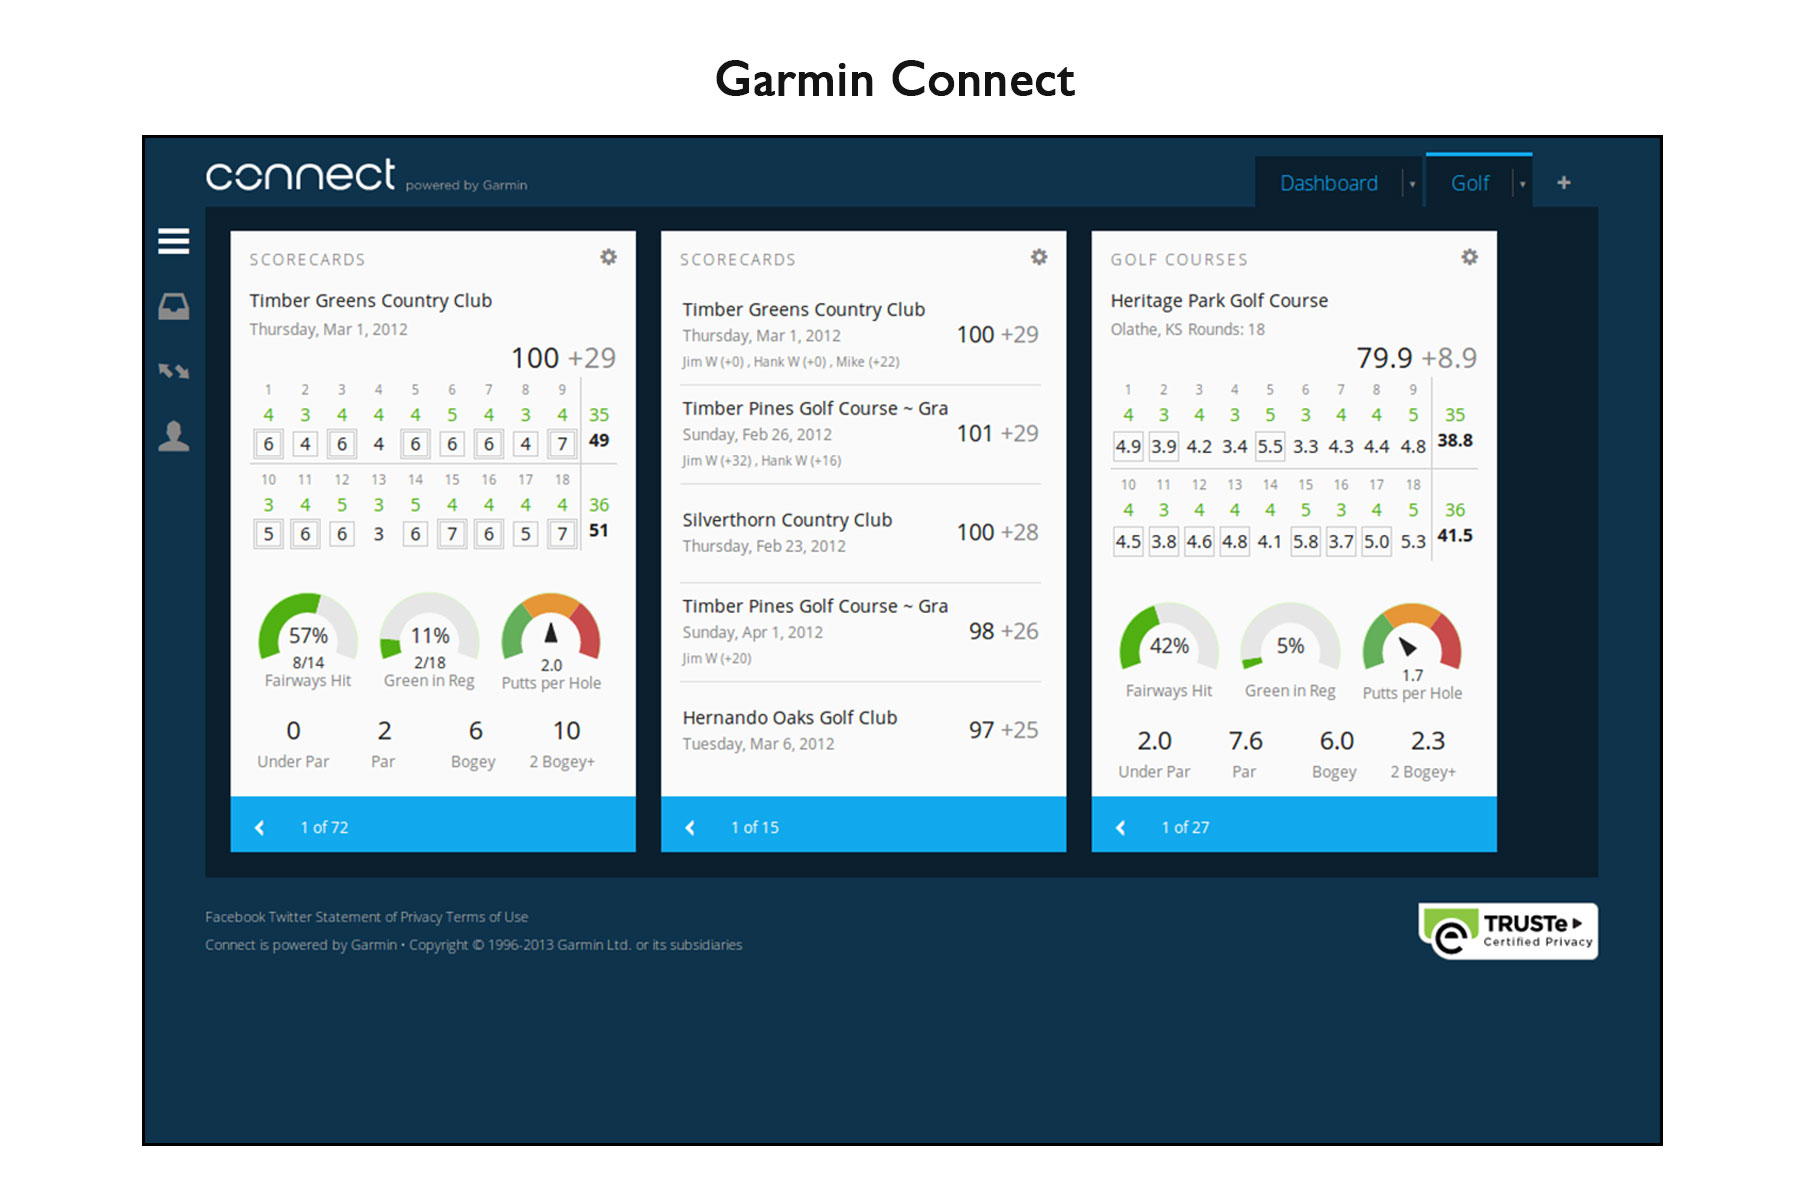 how to add golf courses to garmin connect